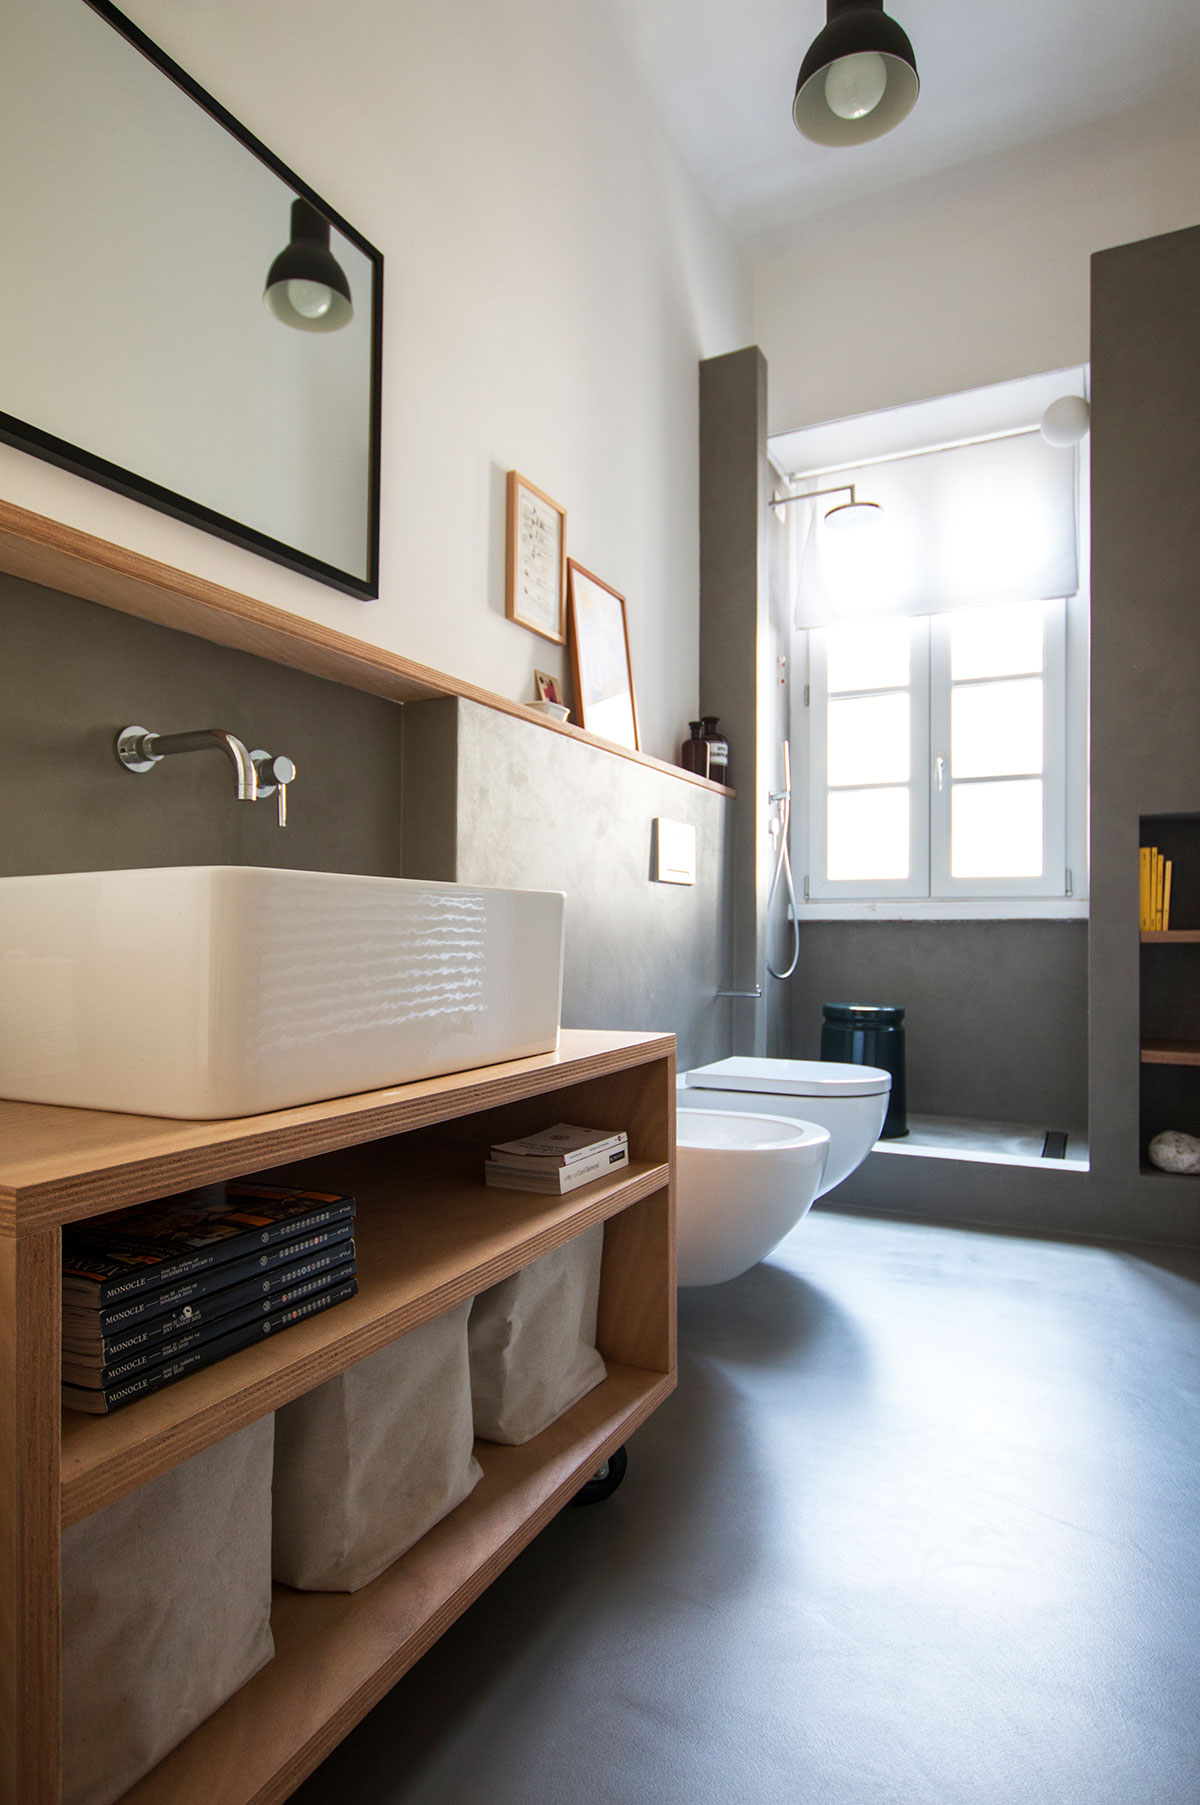 kickoffice casa a bathroom epoxy